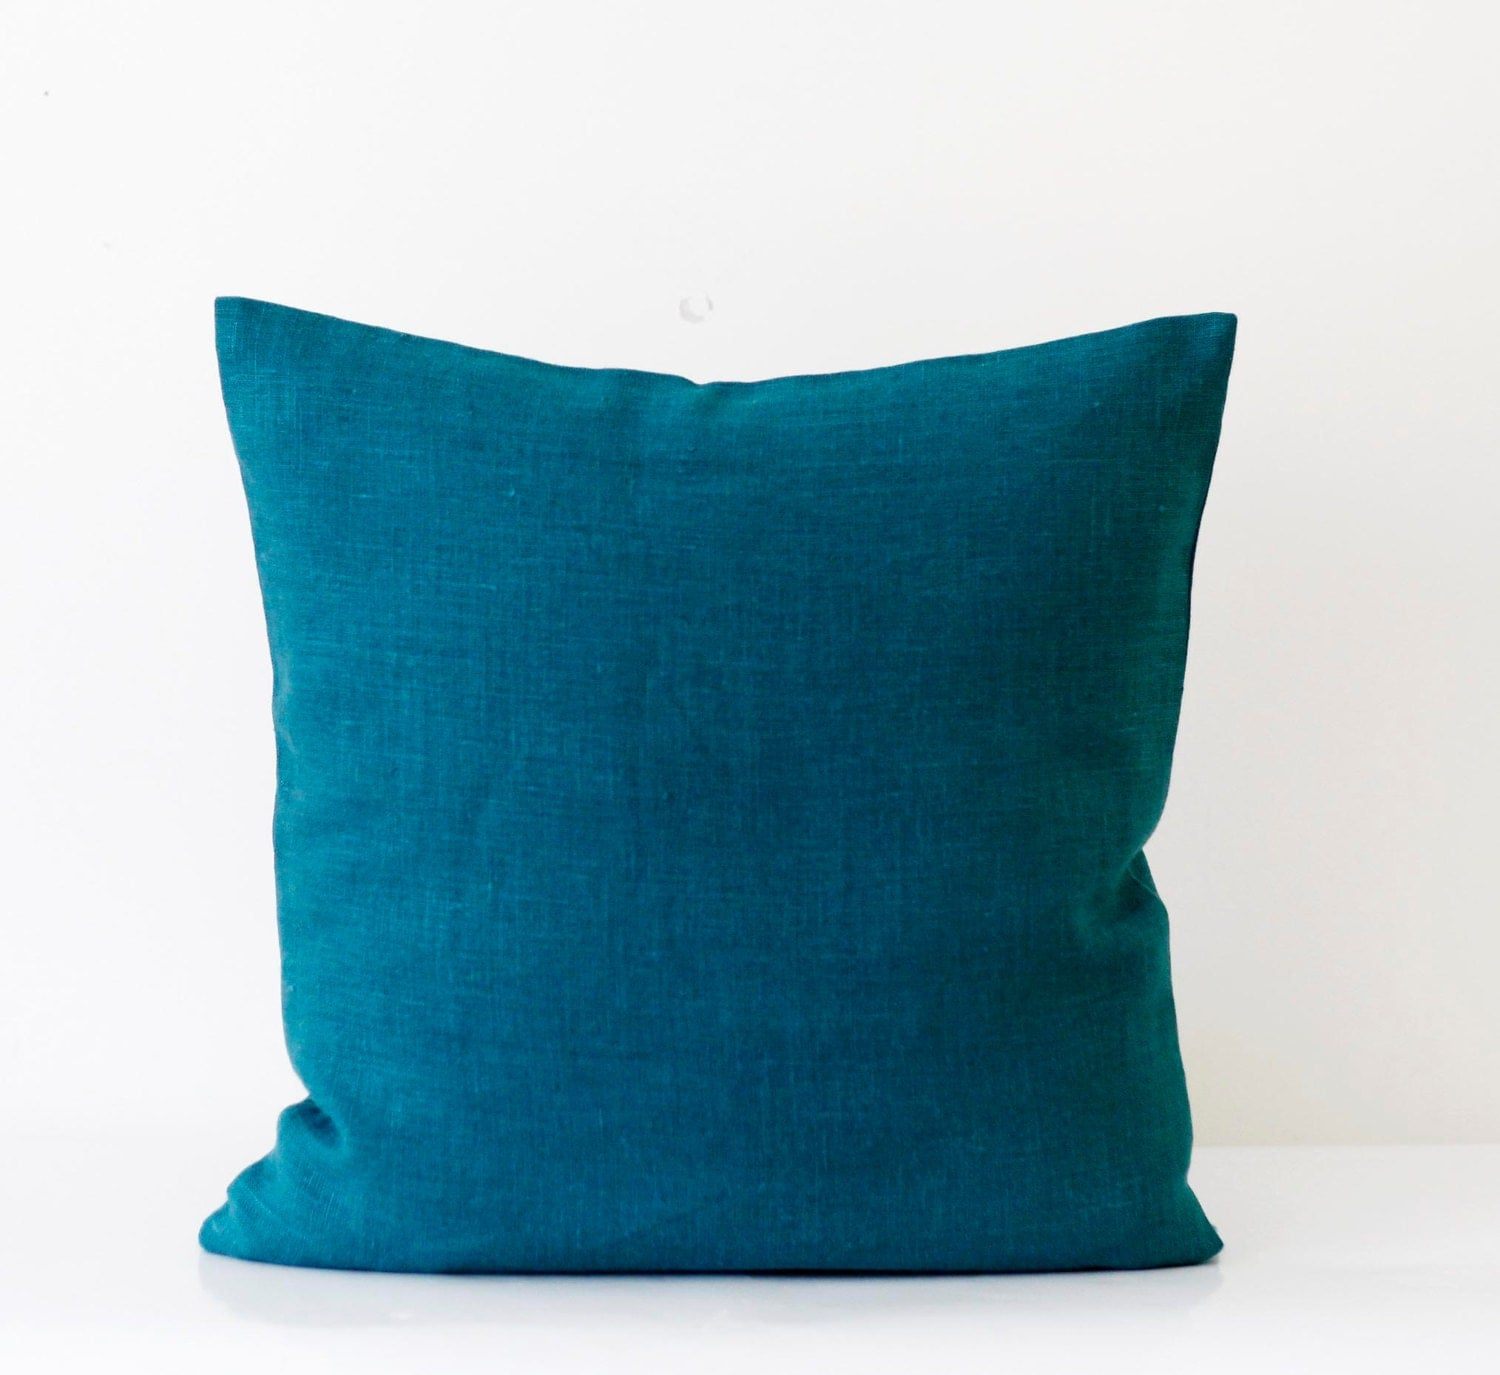 Blaue Kissen Teal Blue Pillow Cover Classic Style Decorative By Pillowlink